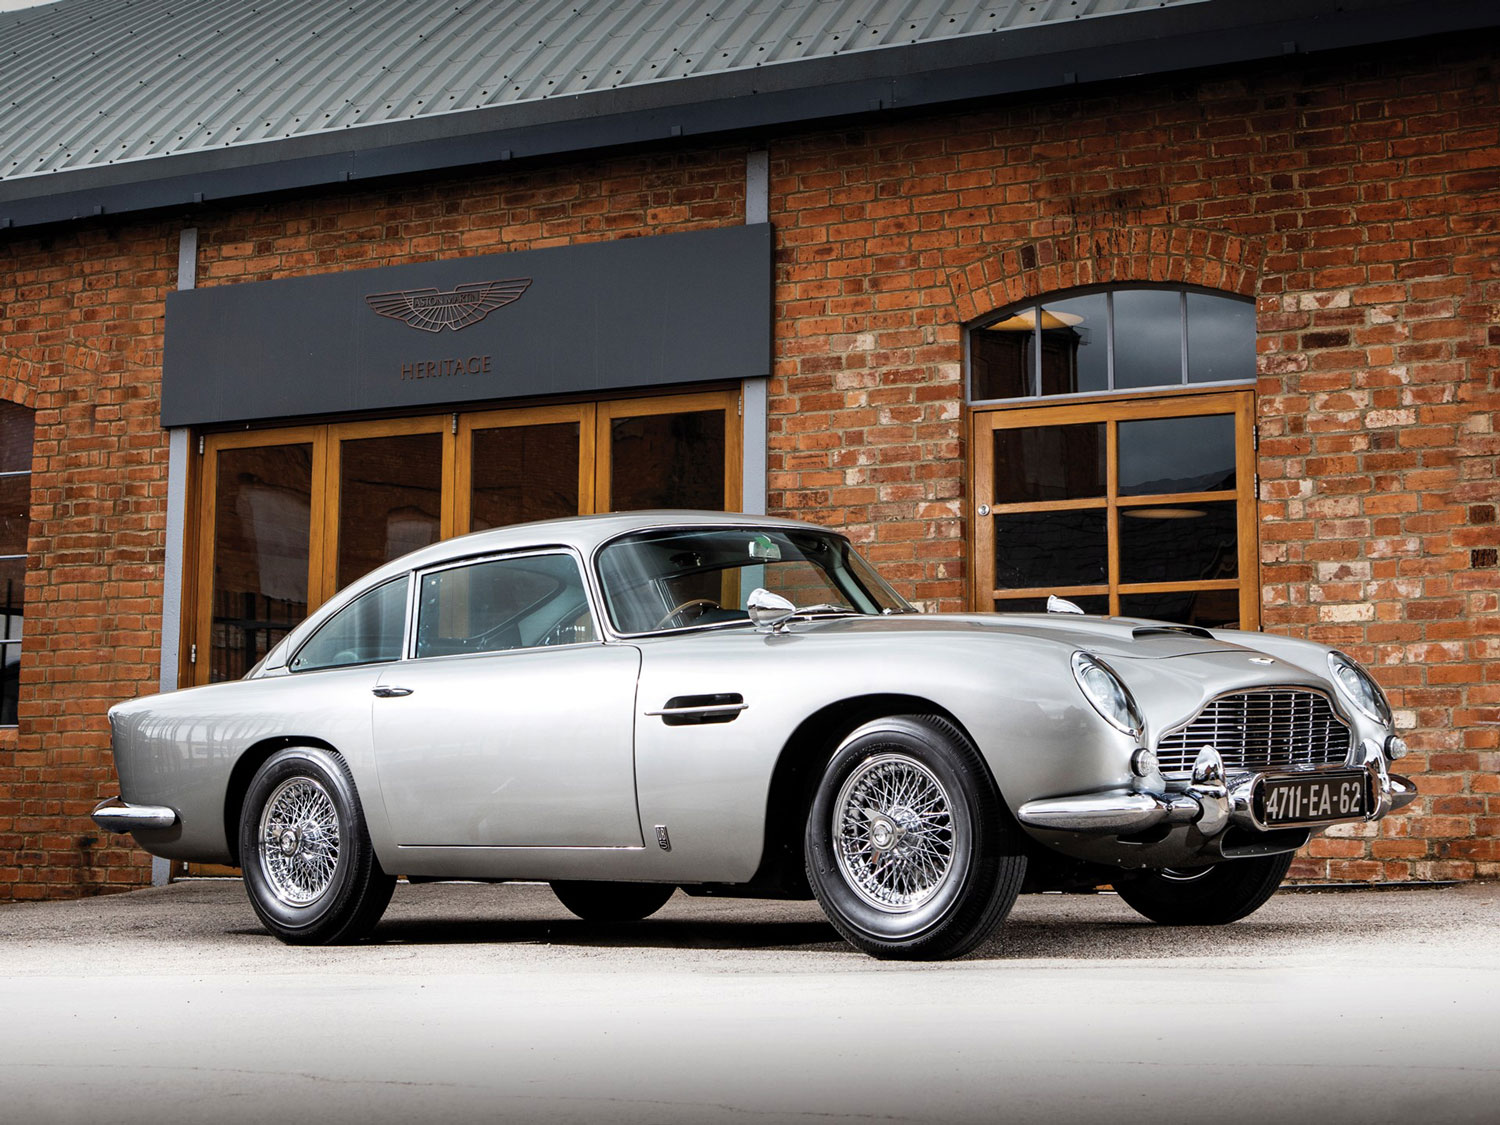 1965 Aston Martin DB5 'Bond Car'